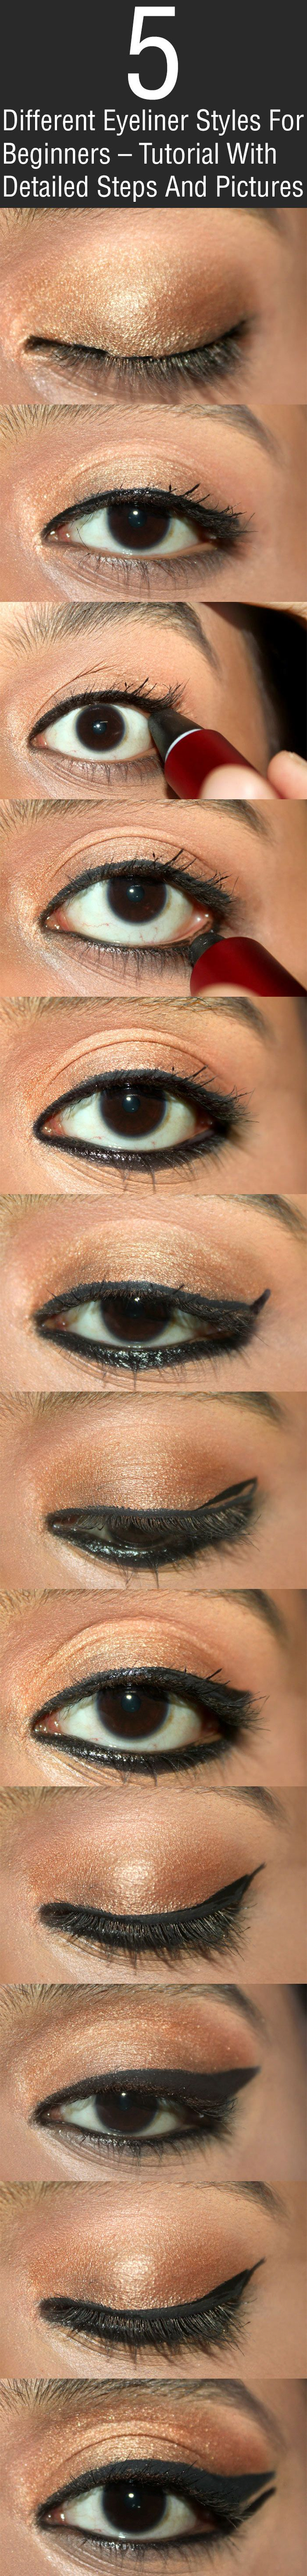 how to use eyeliner for beginners